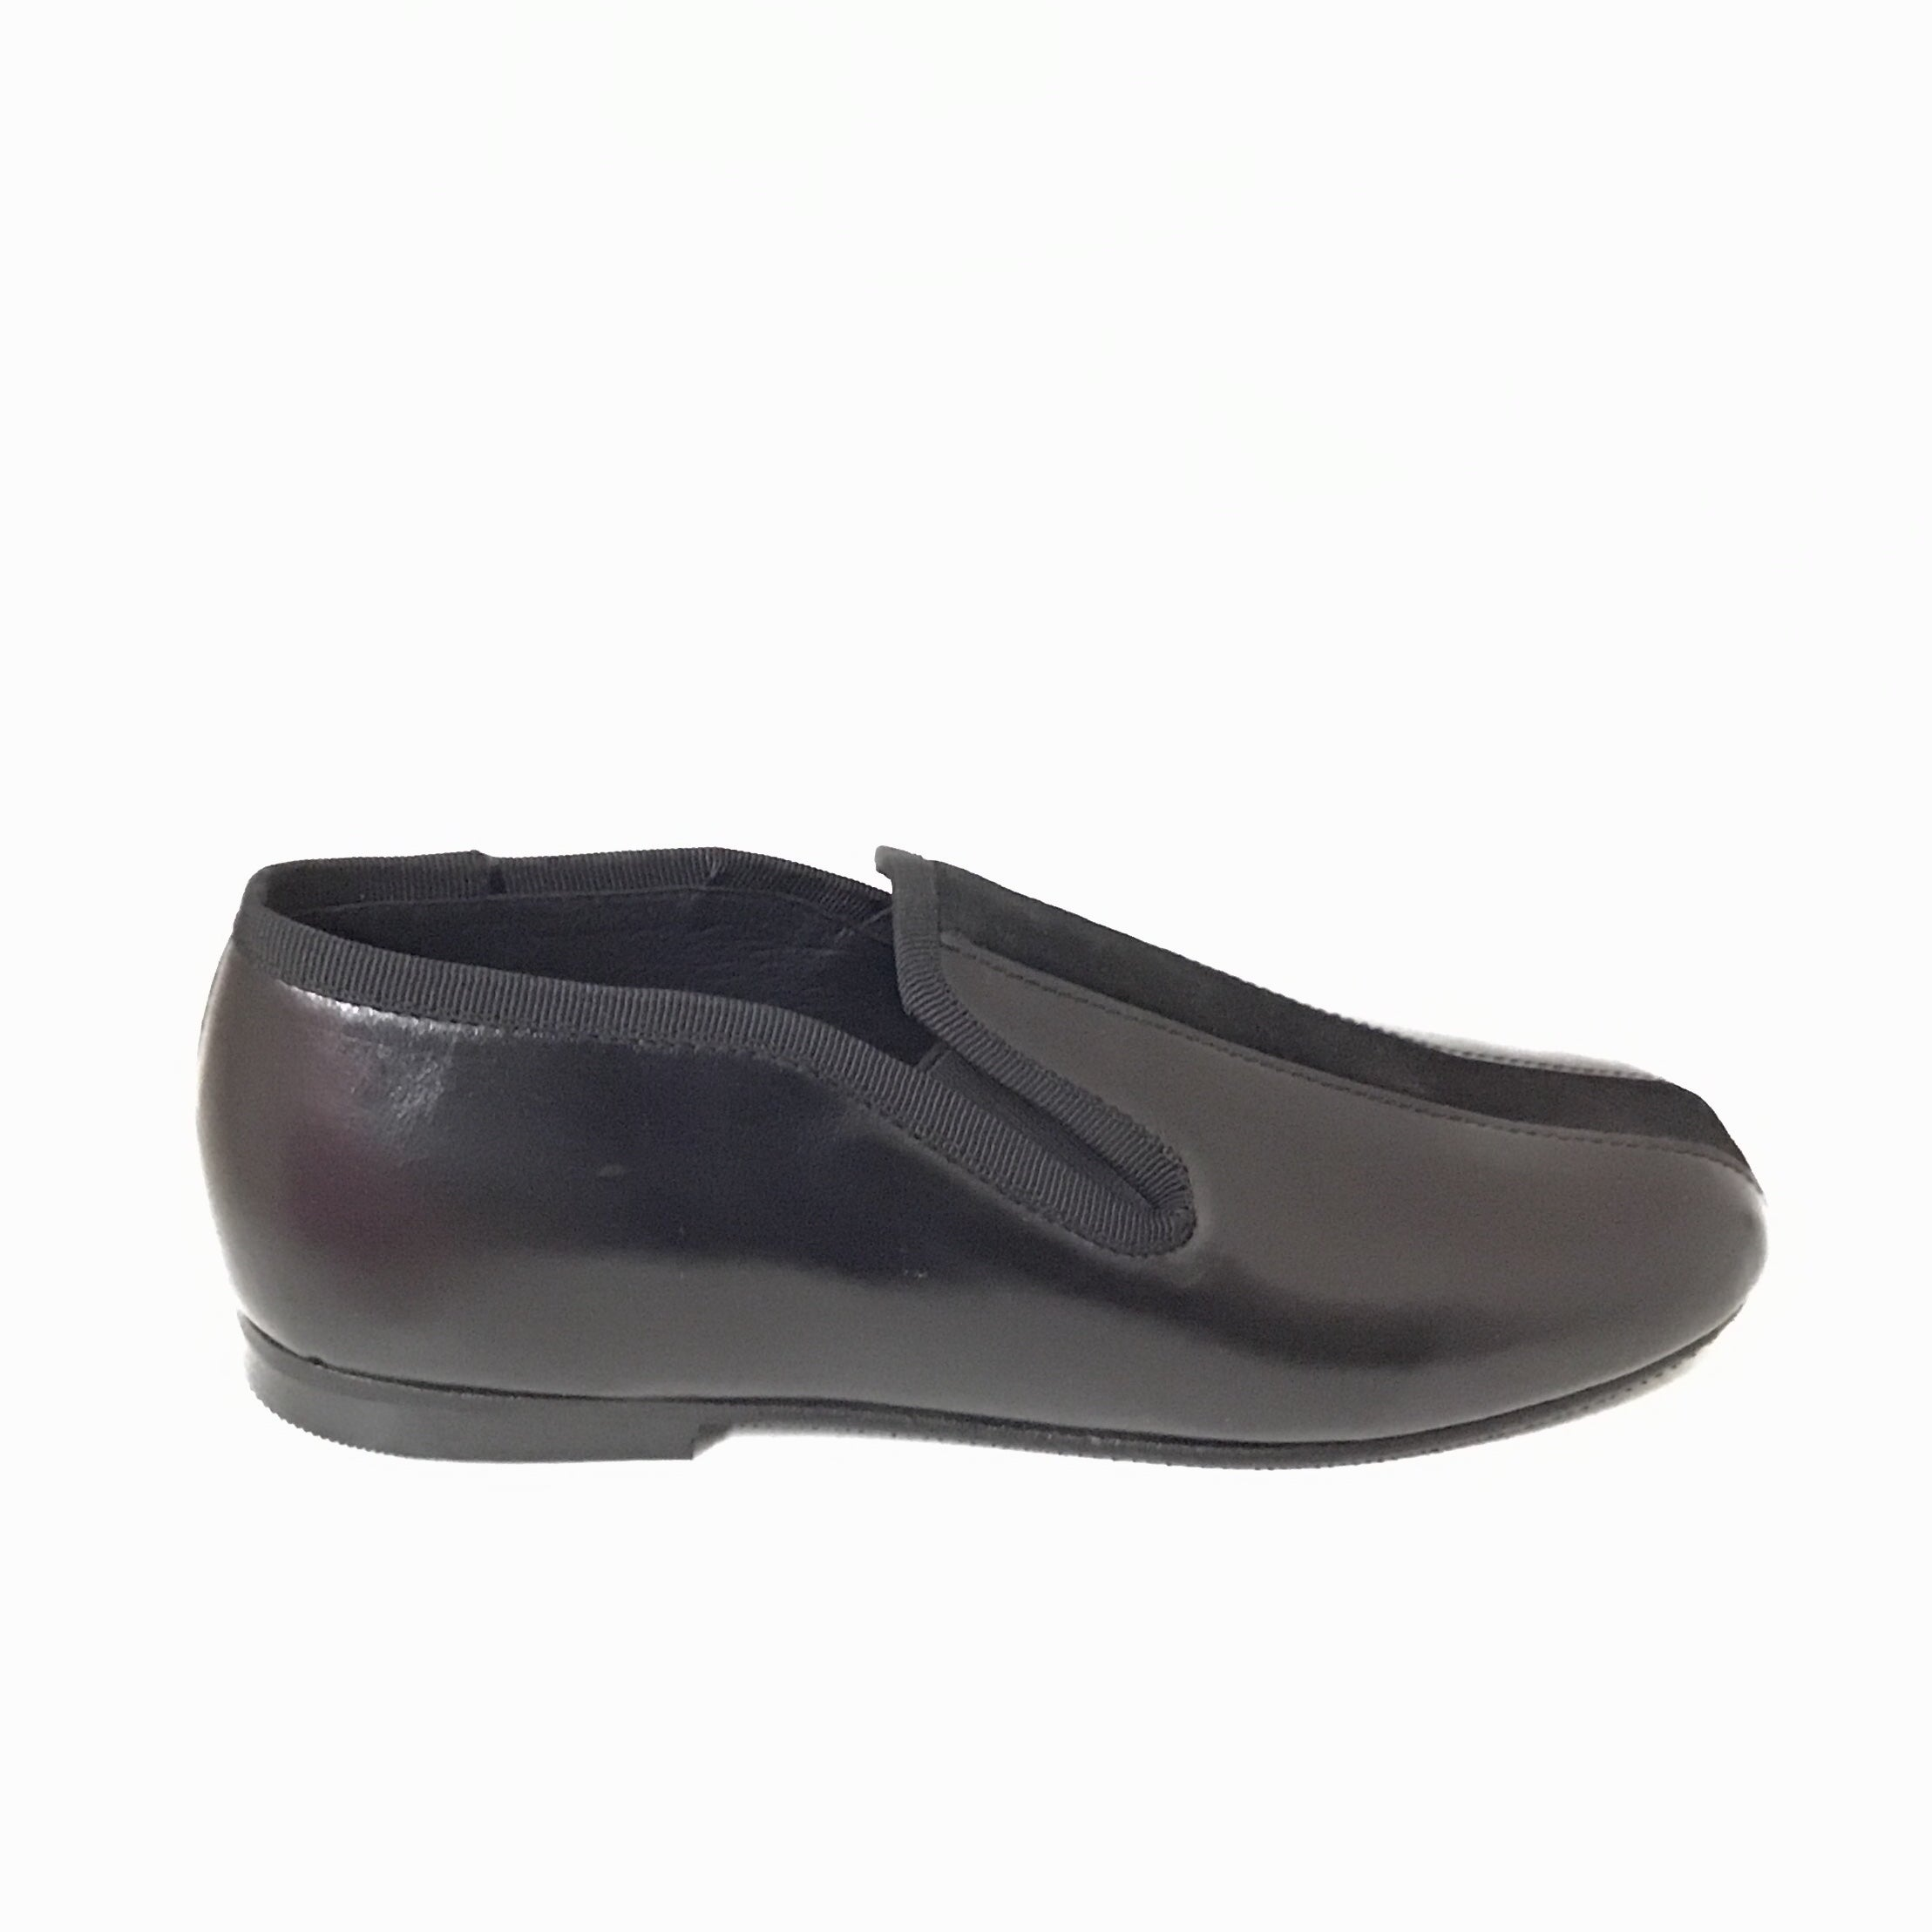 Luccini Black Slip On with Black Suede Center